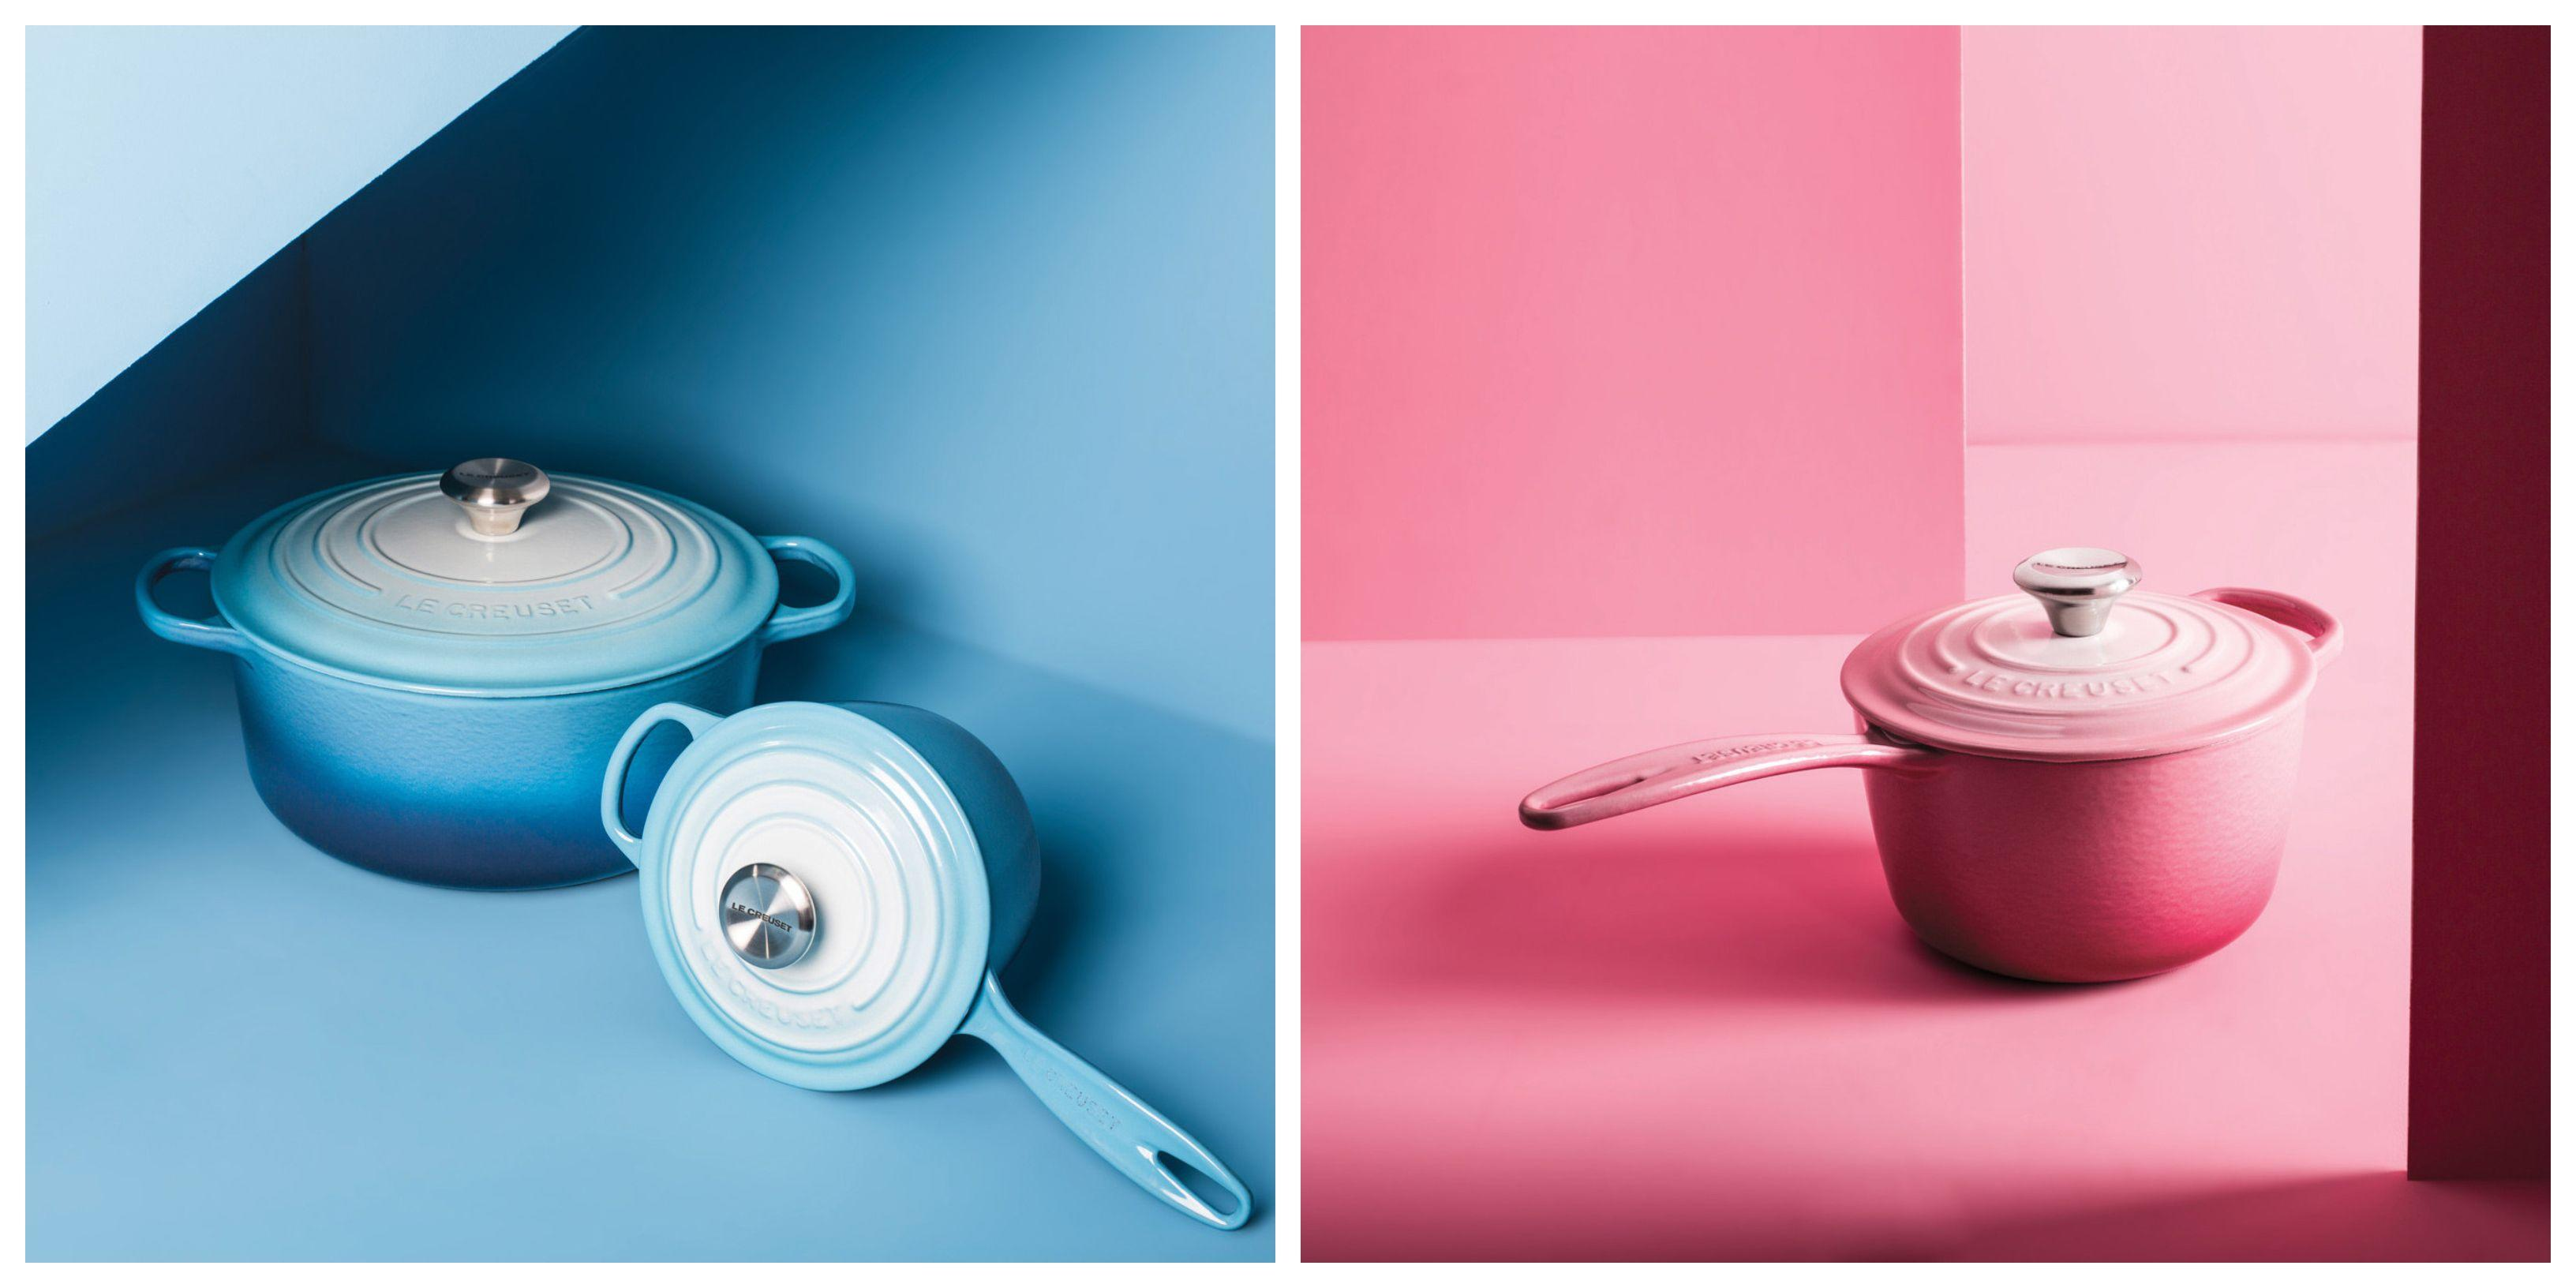 Le Creuset Just Released the Most Beautiful Ombre Collection